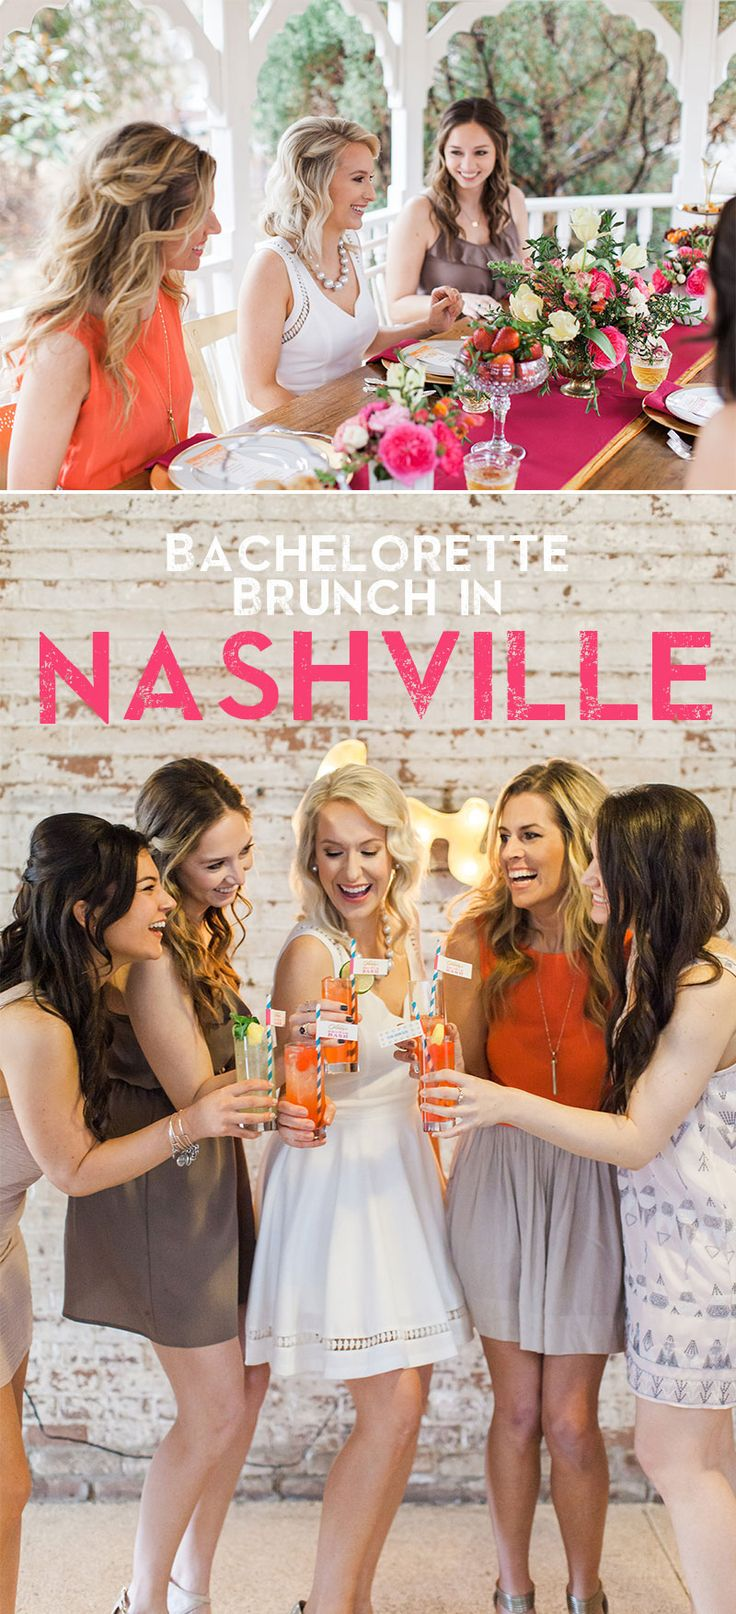 best nashville bachelorette images on pinterest nashville